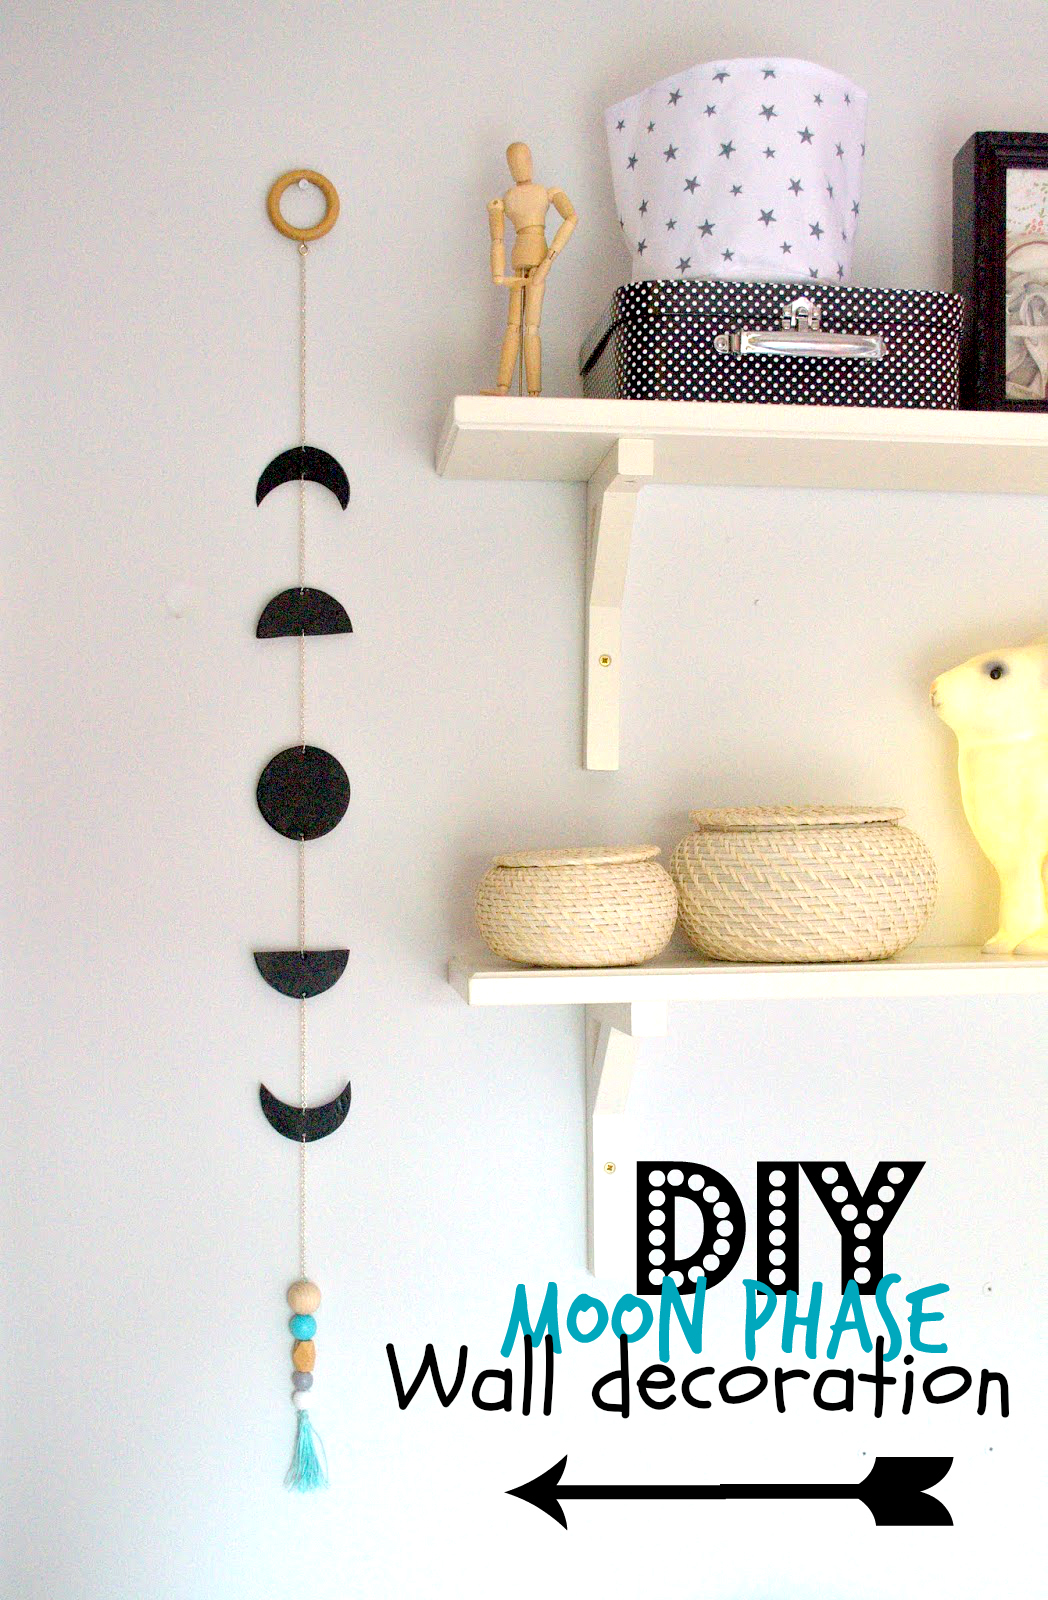 Diy moonphase wall decoration